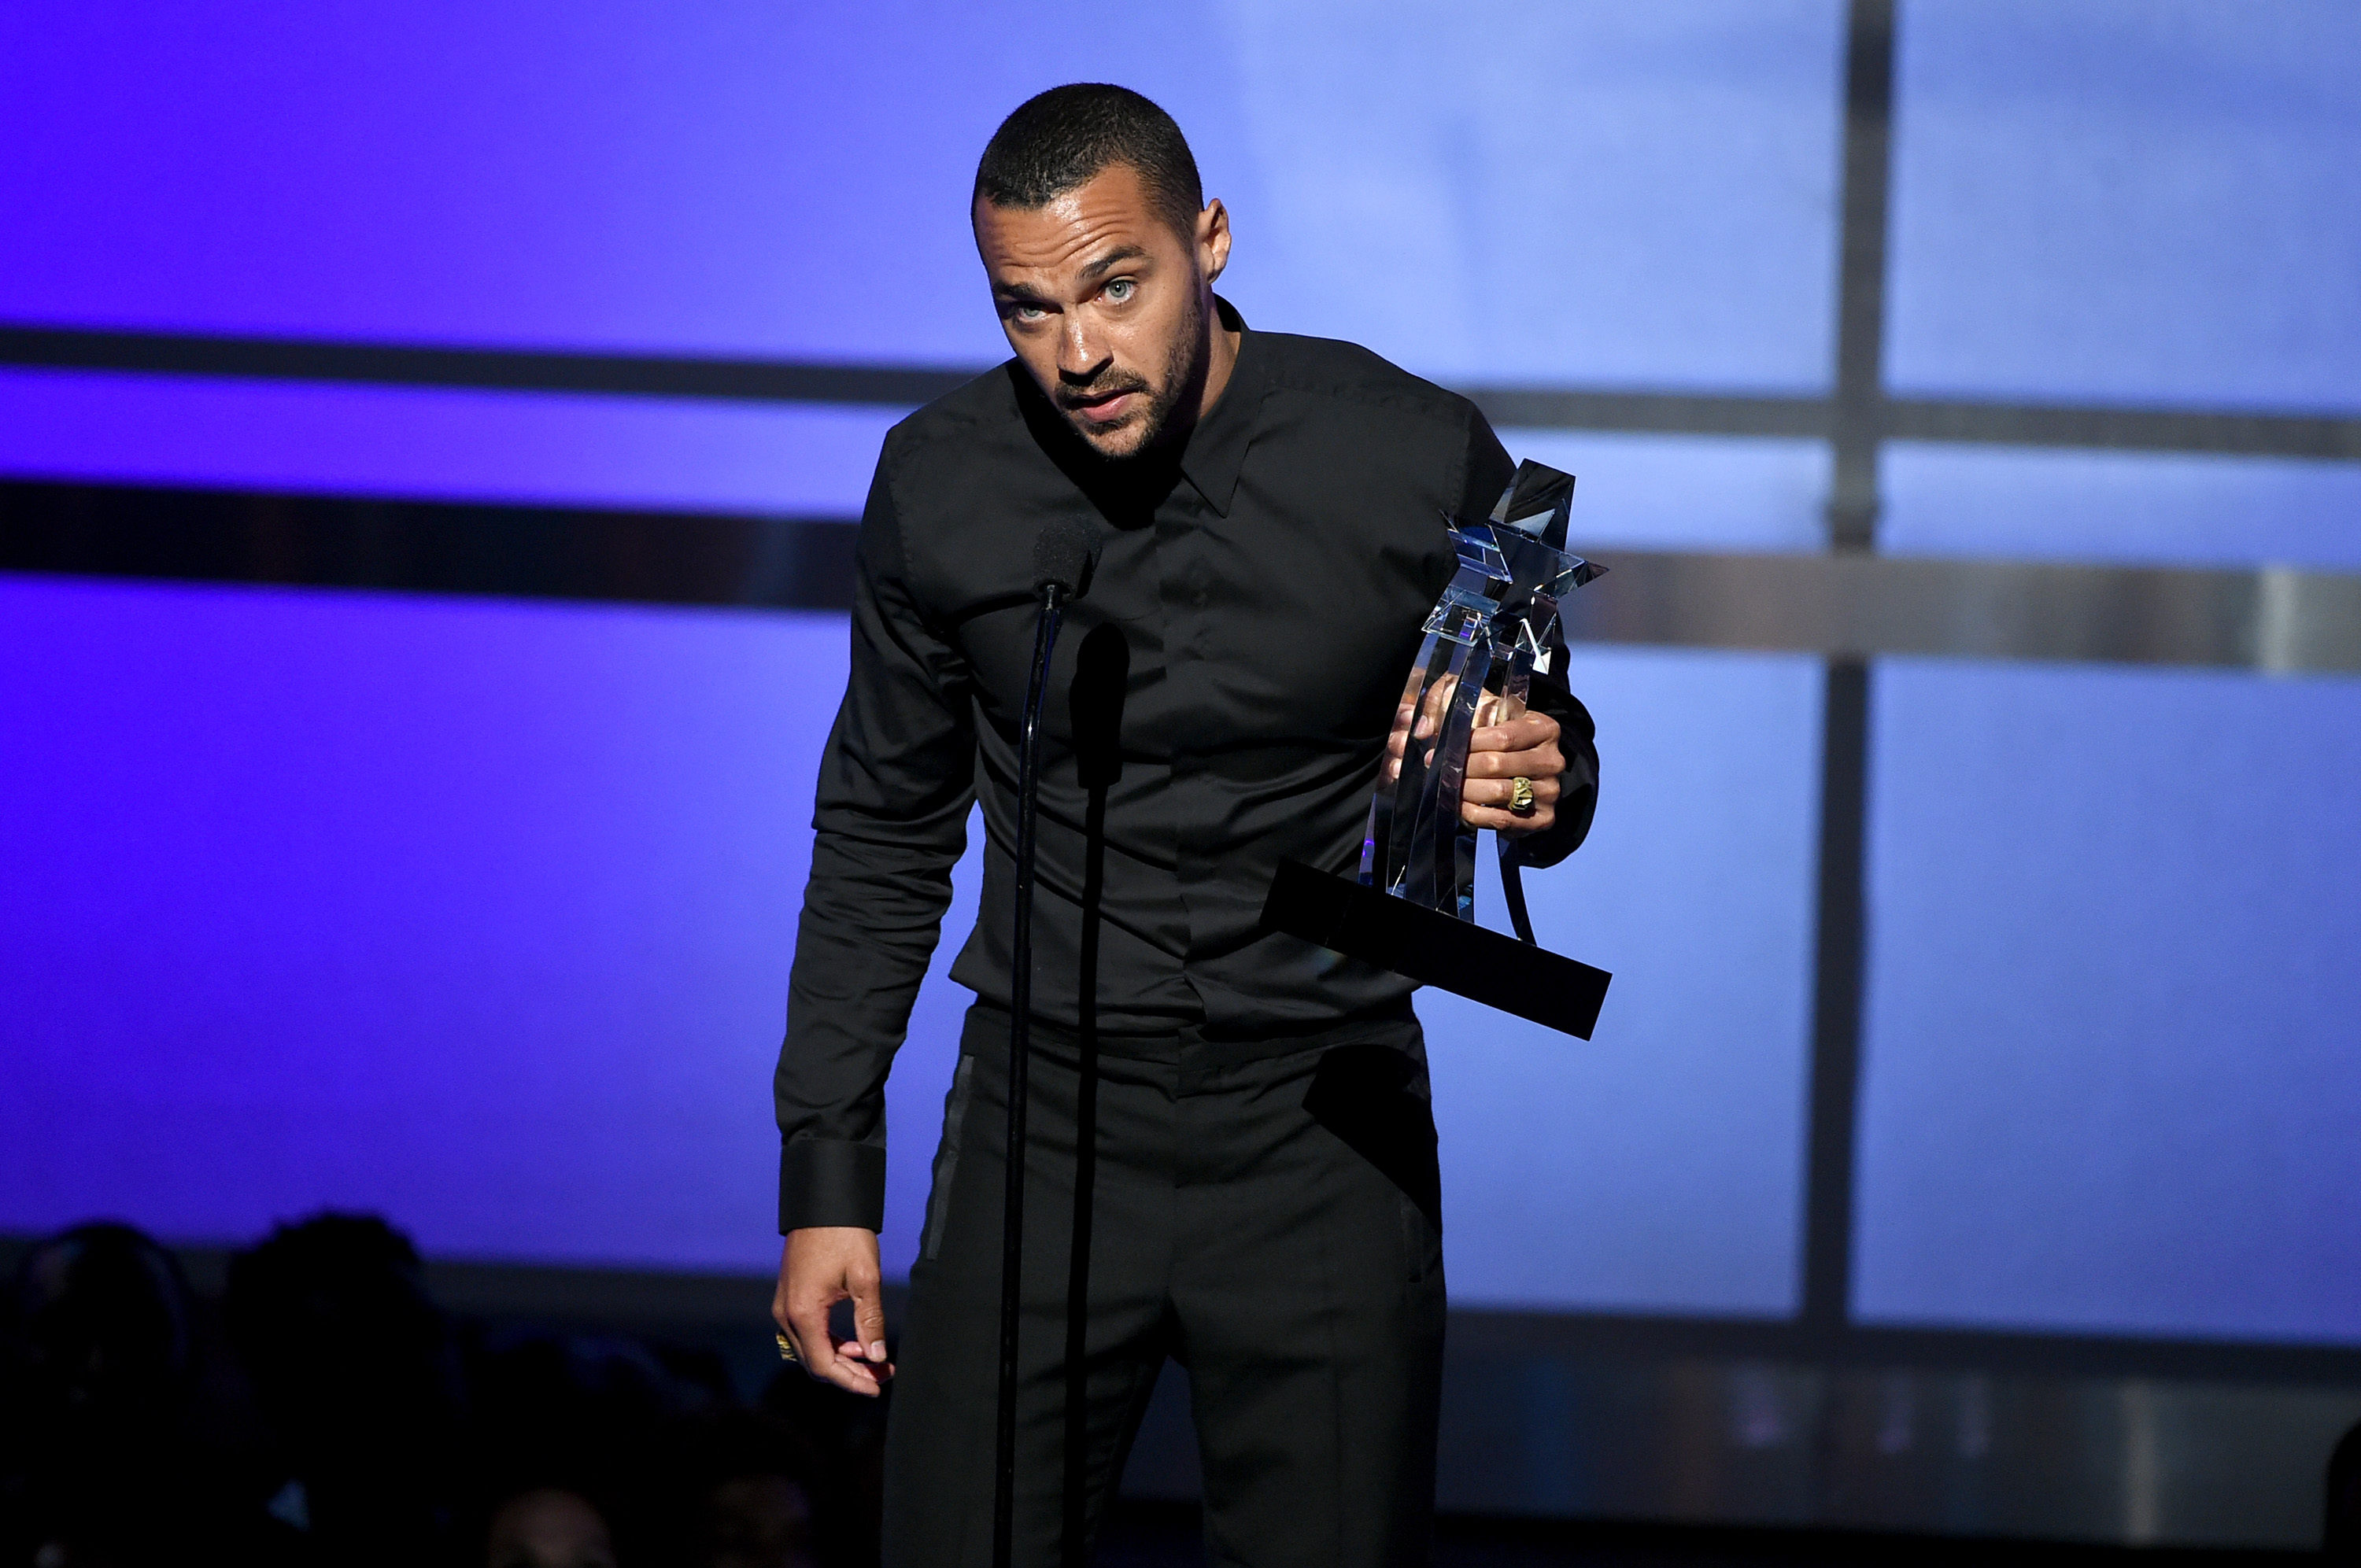 Honoree Jesse Williams accepts the Humanitarian Award onstage during the 2016 BET Awards at the Microsoft Theater on June 26 in Los Angeles, California.